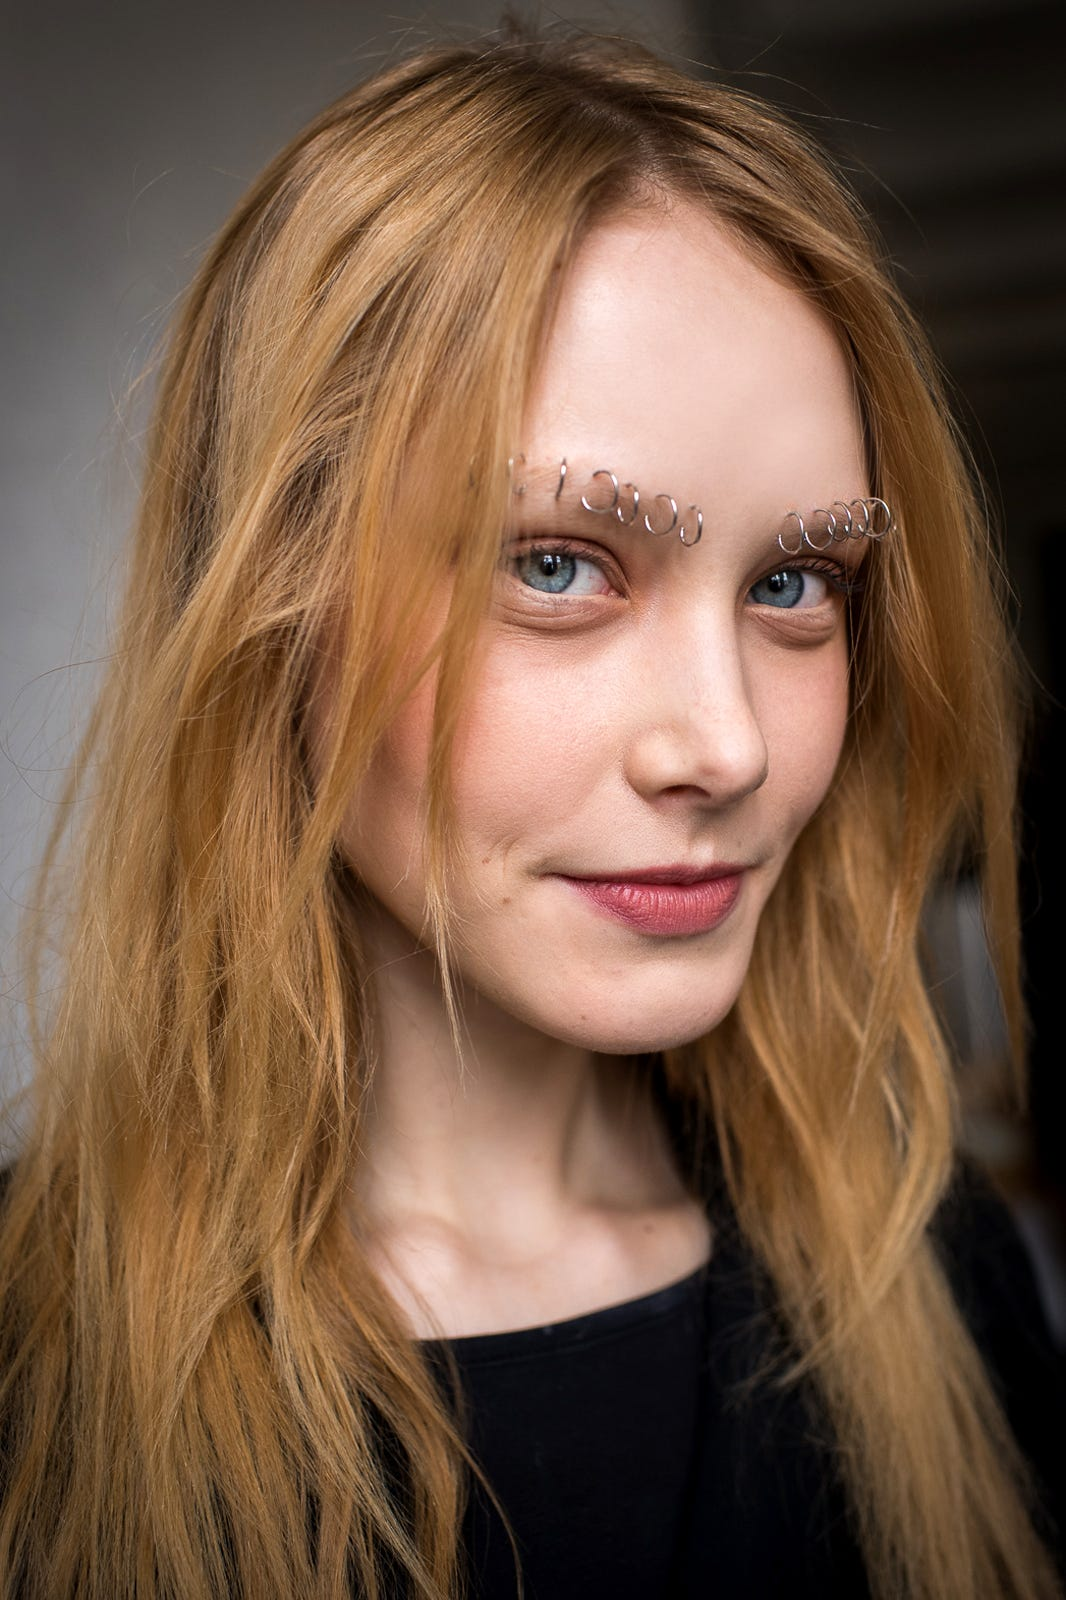 Rodarte Pierced Eyebrows Fashion Week Spring 2015